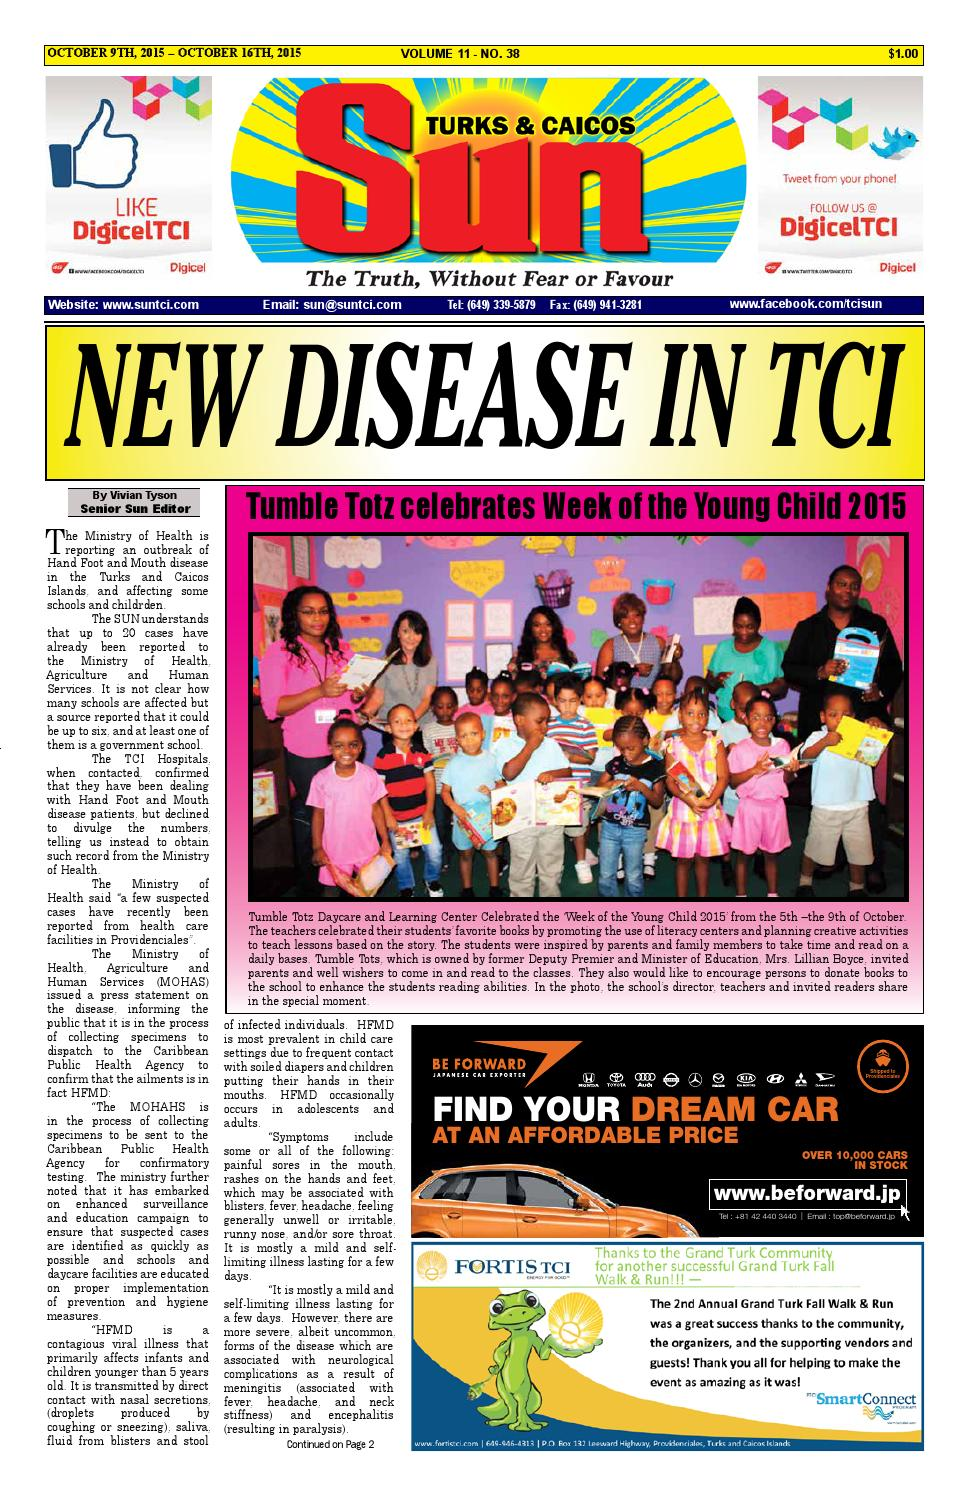 VOLUME 11 ISSUE 38 by The SUN Newspaper - issuu